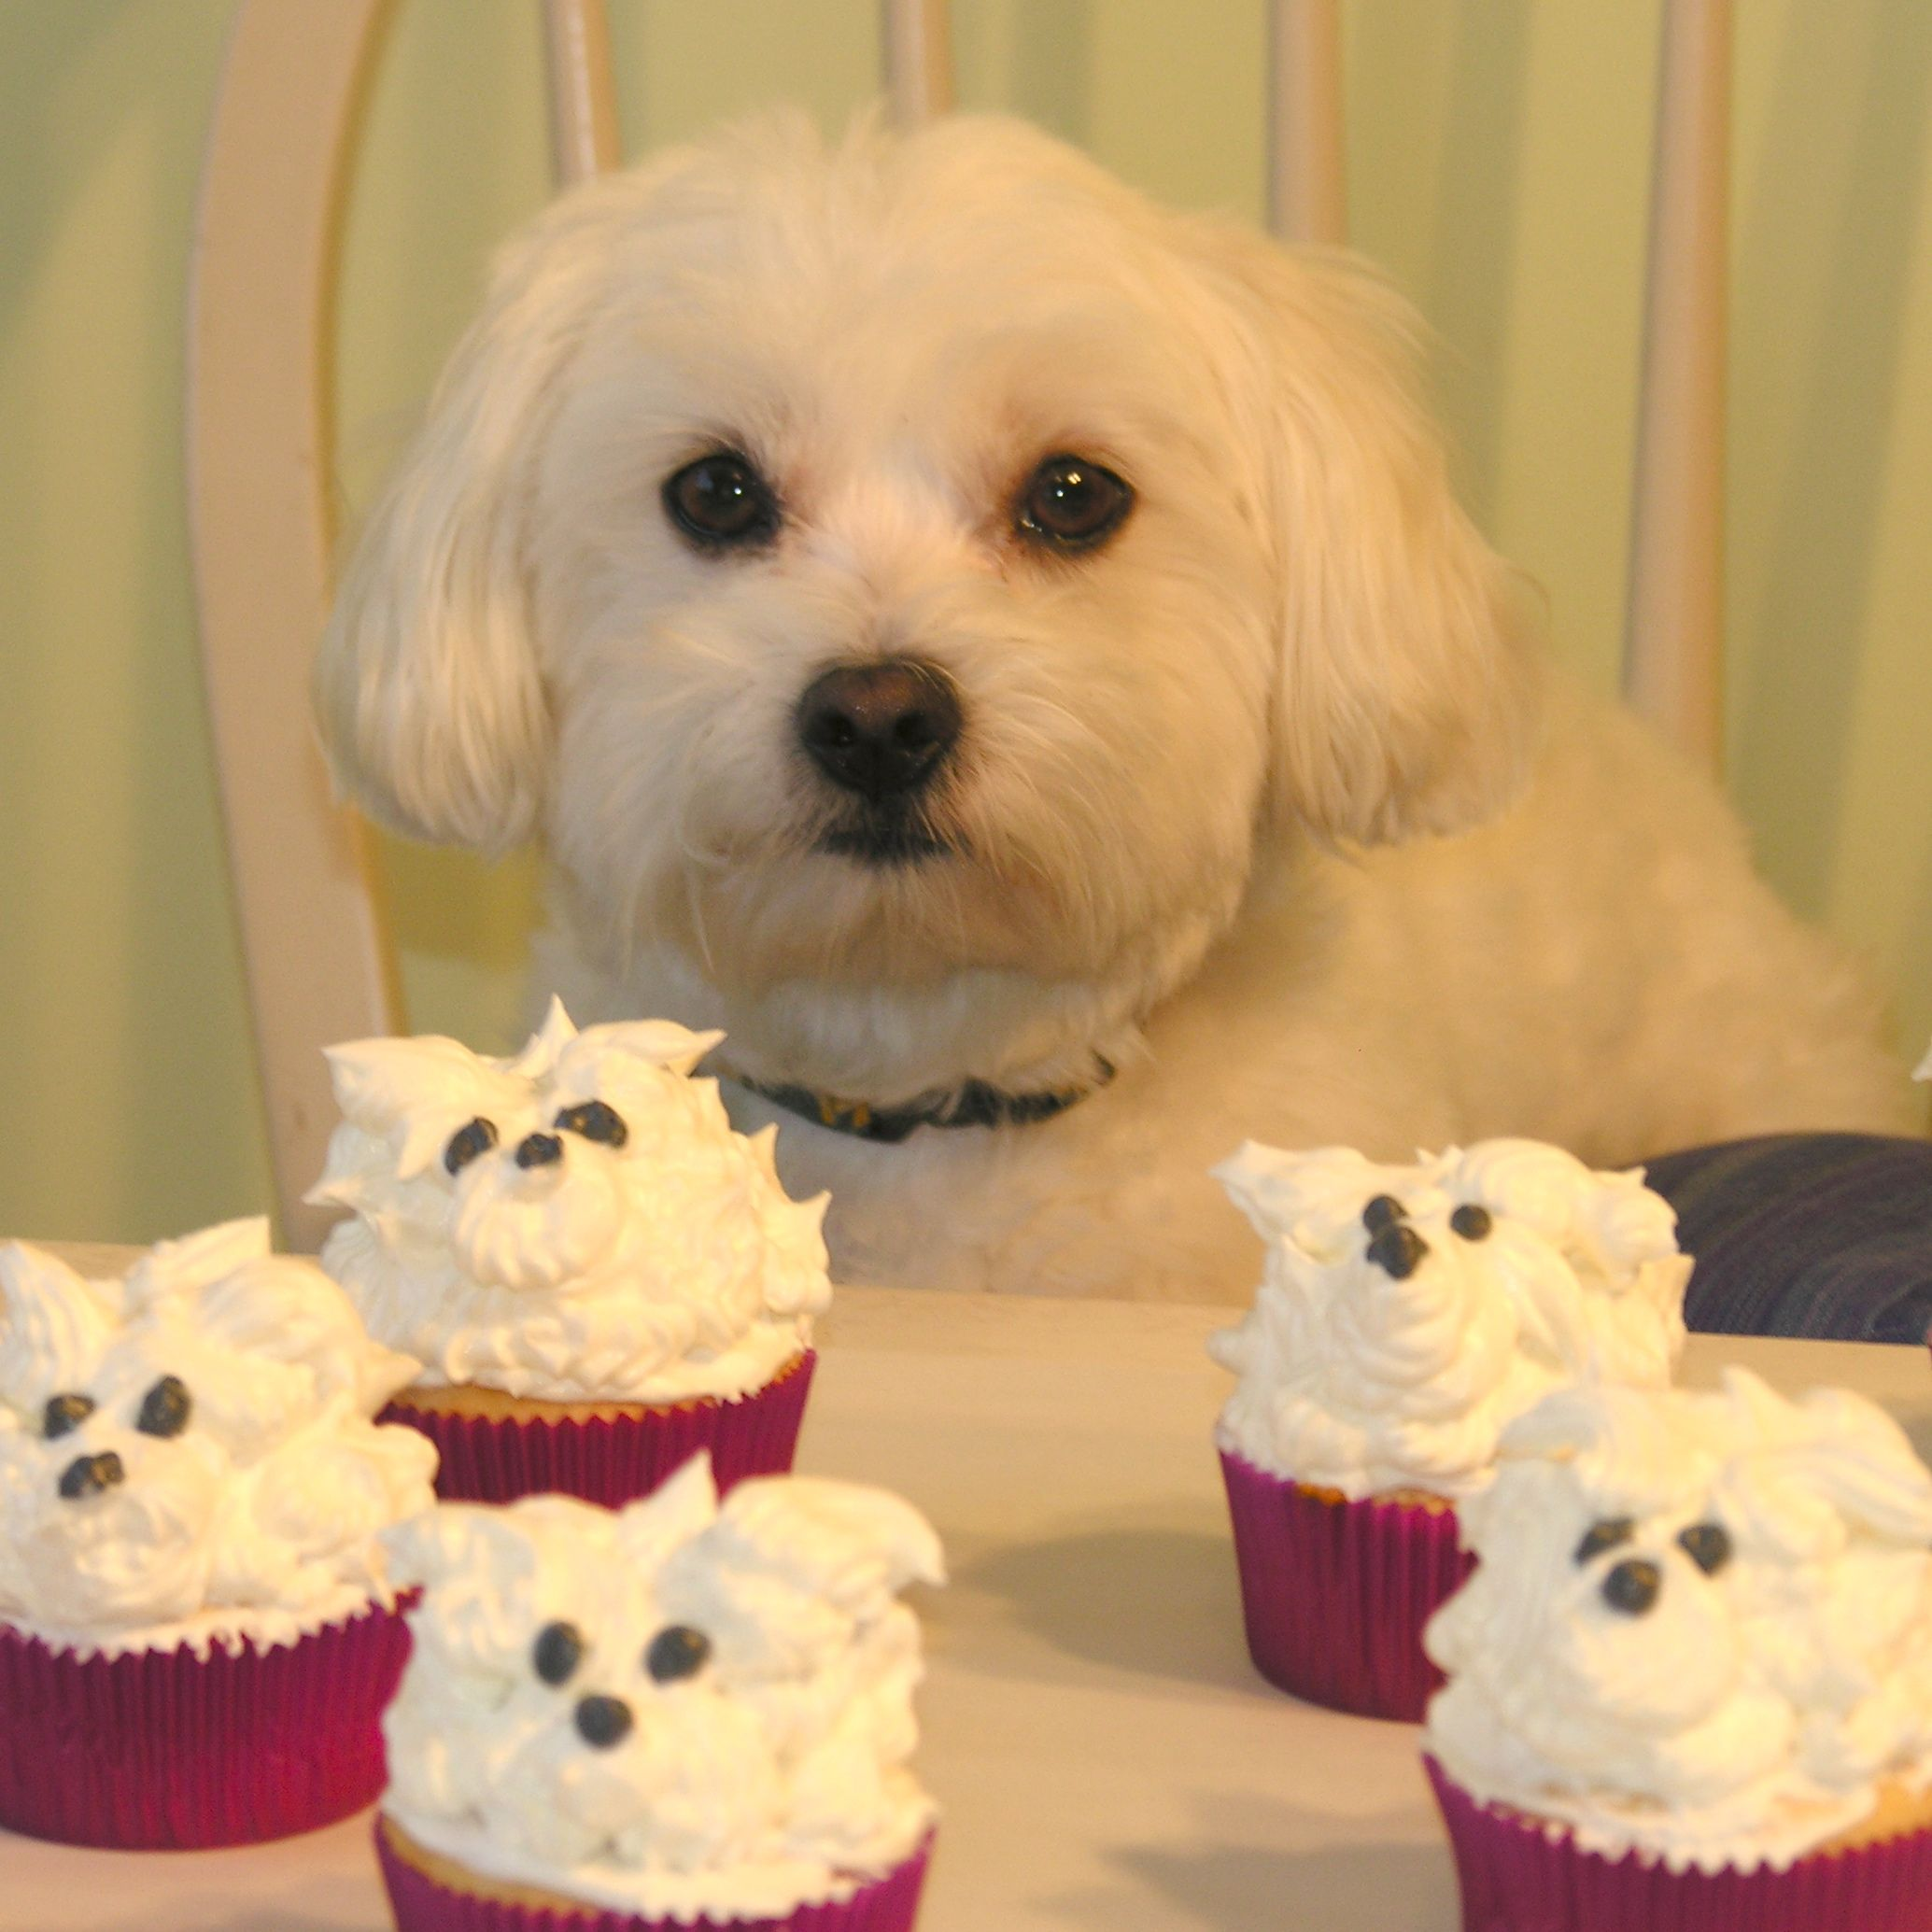 How To Make Cakes For Dogs To Eat